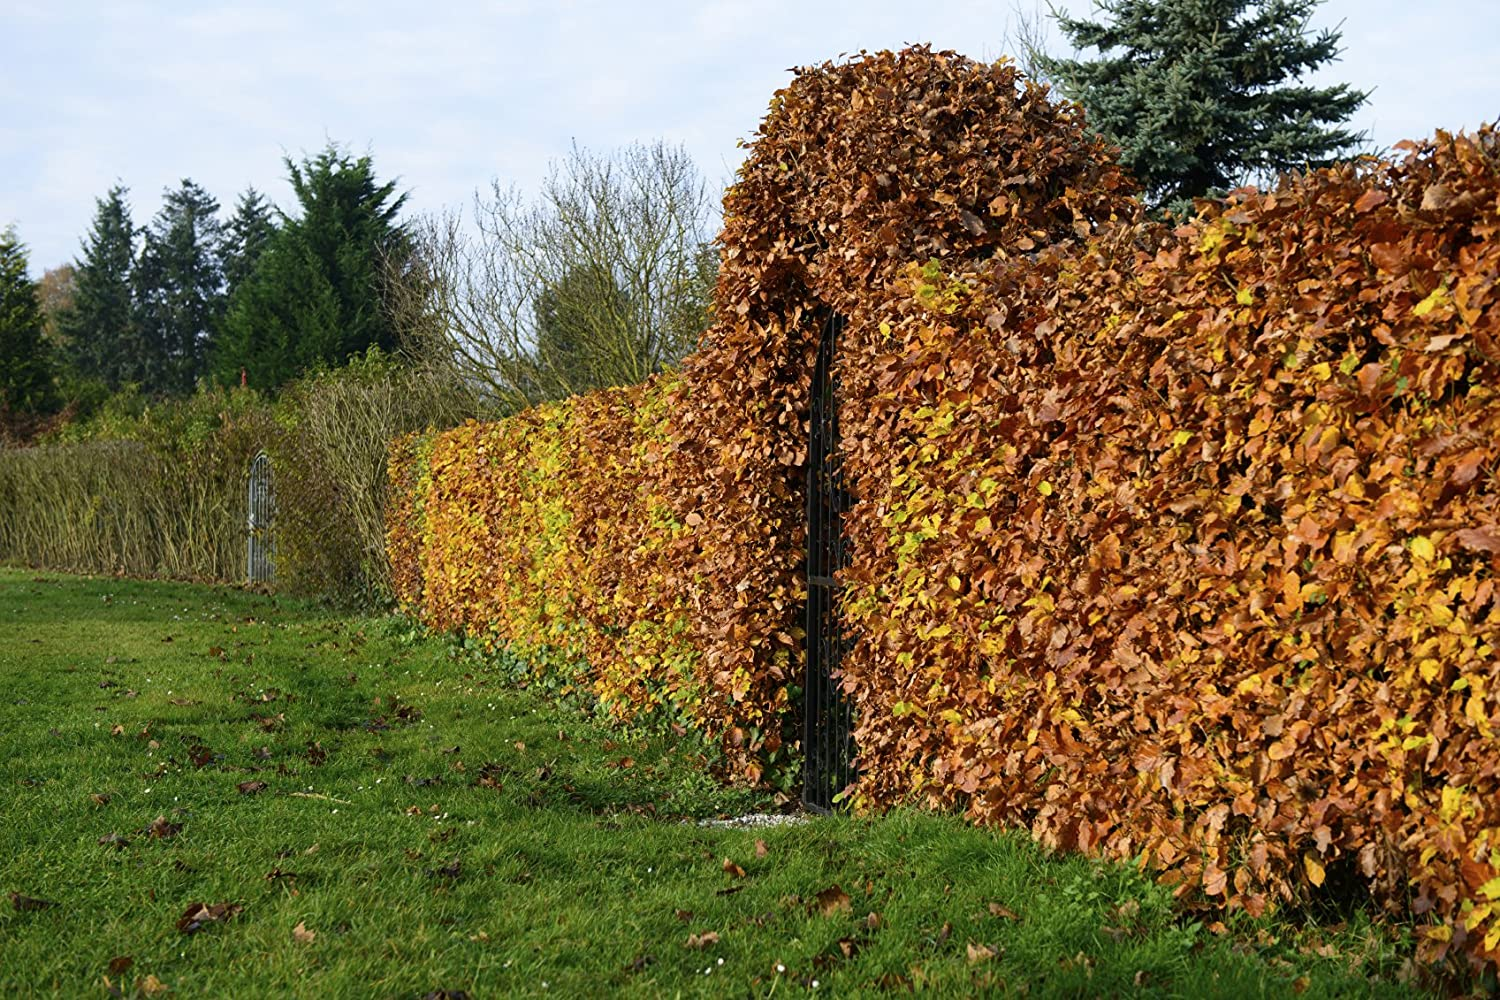 1 Green Beech Hedging Plant 3-4ft Fagus Sylvatica Trees, Copper Winter Leaves 3fatpigs® beechwoodtrees 3fatpigs®